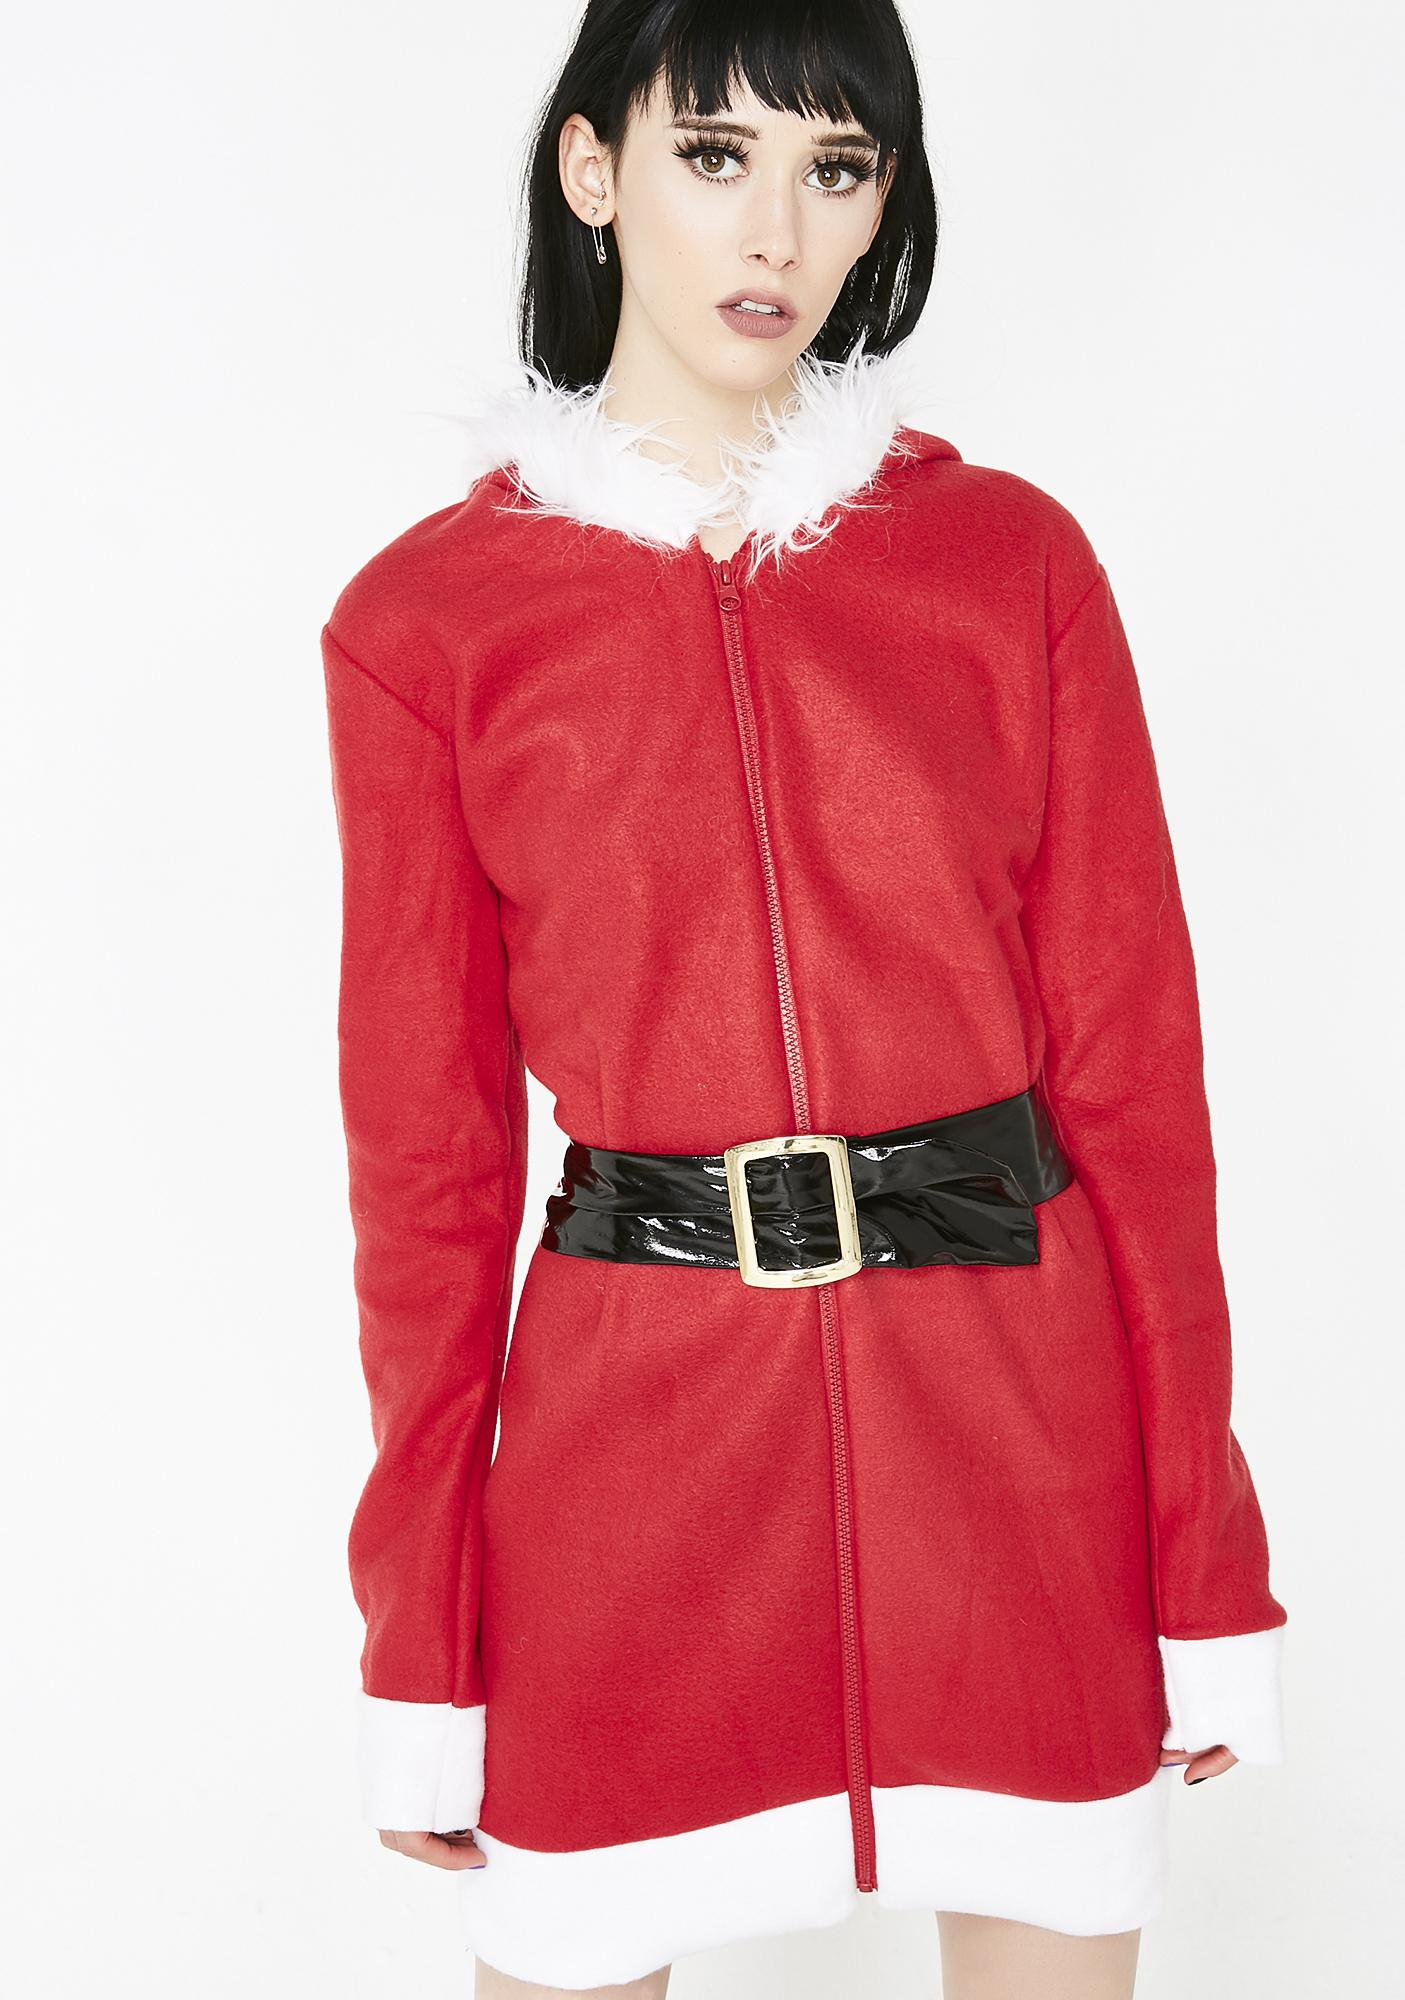 Miss Saint Nick Dress